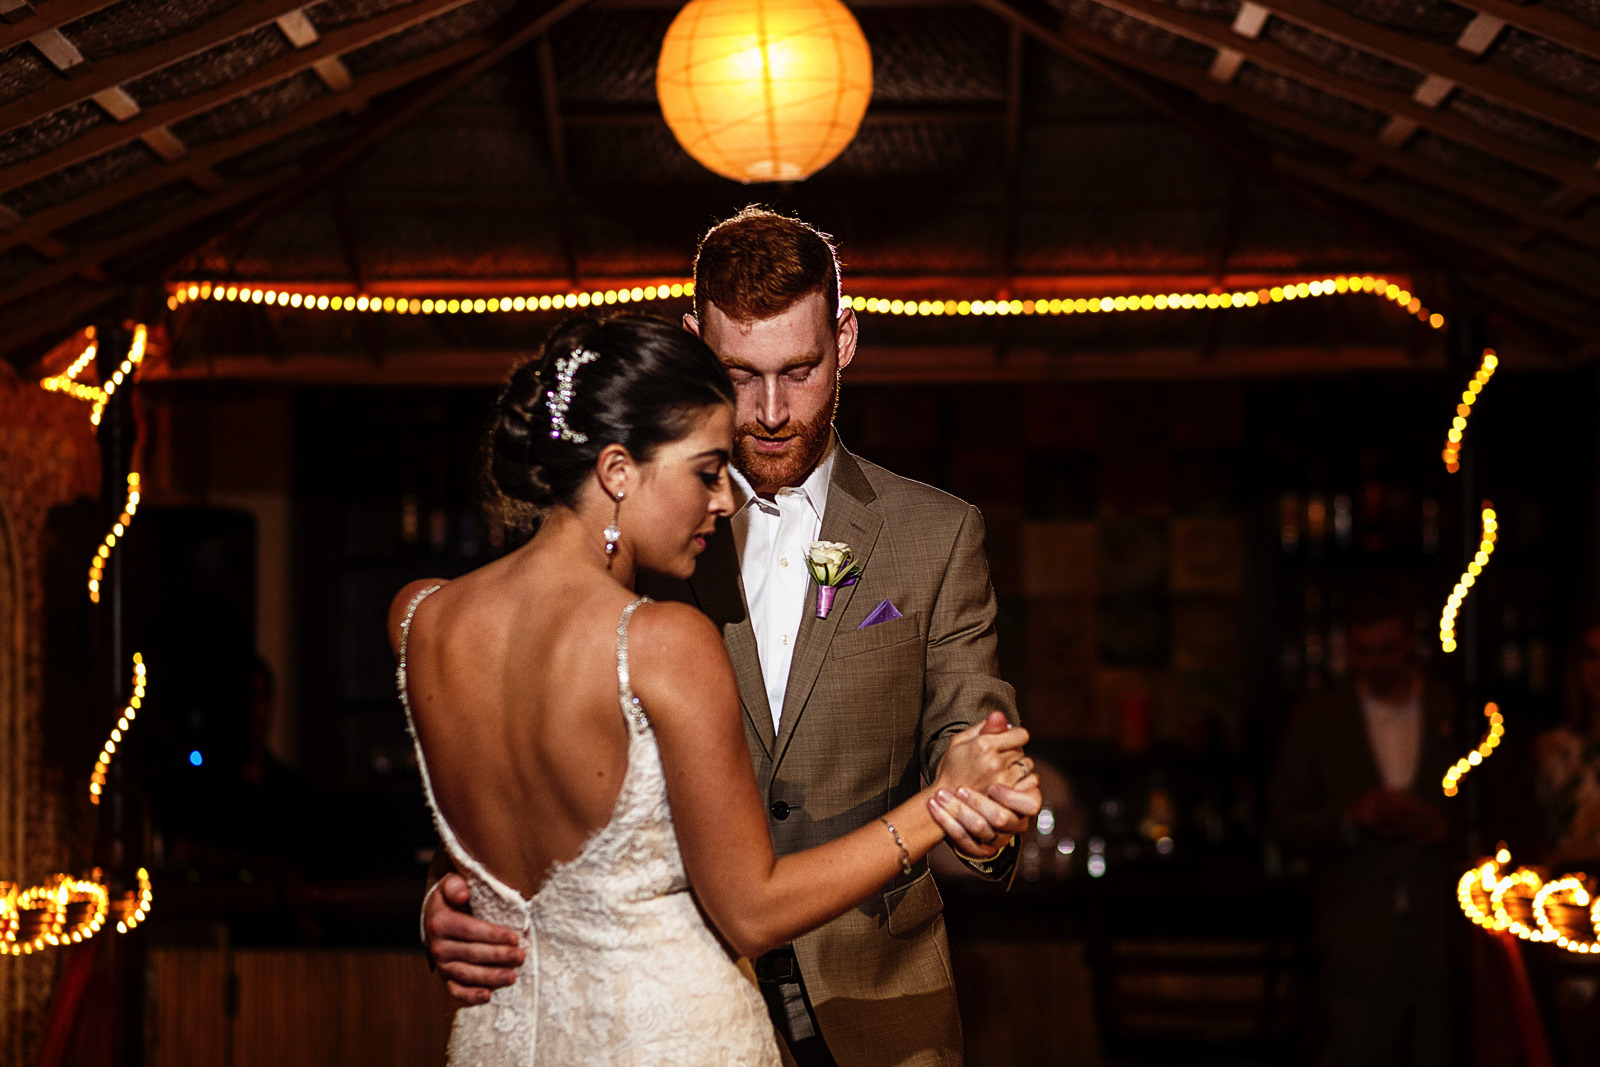 first-dance-groom-bride-palapa-ceiling-tied-lights.jpg